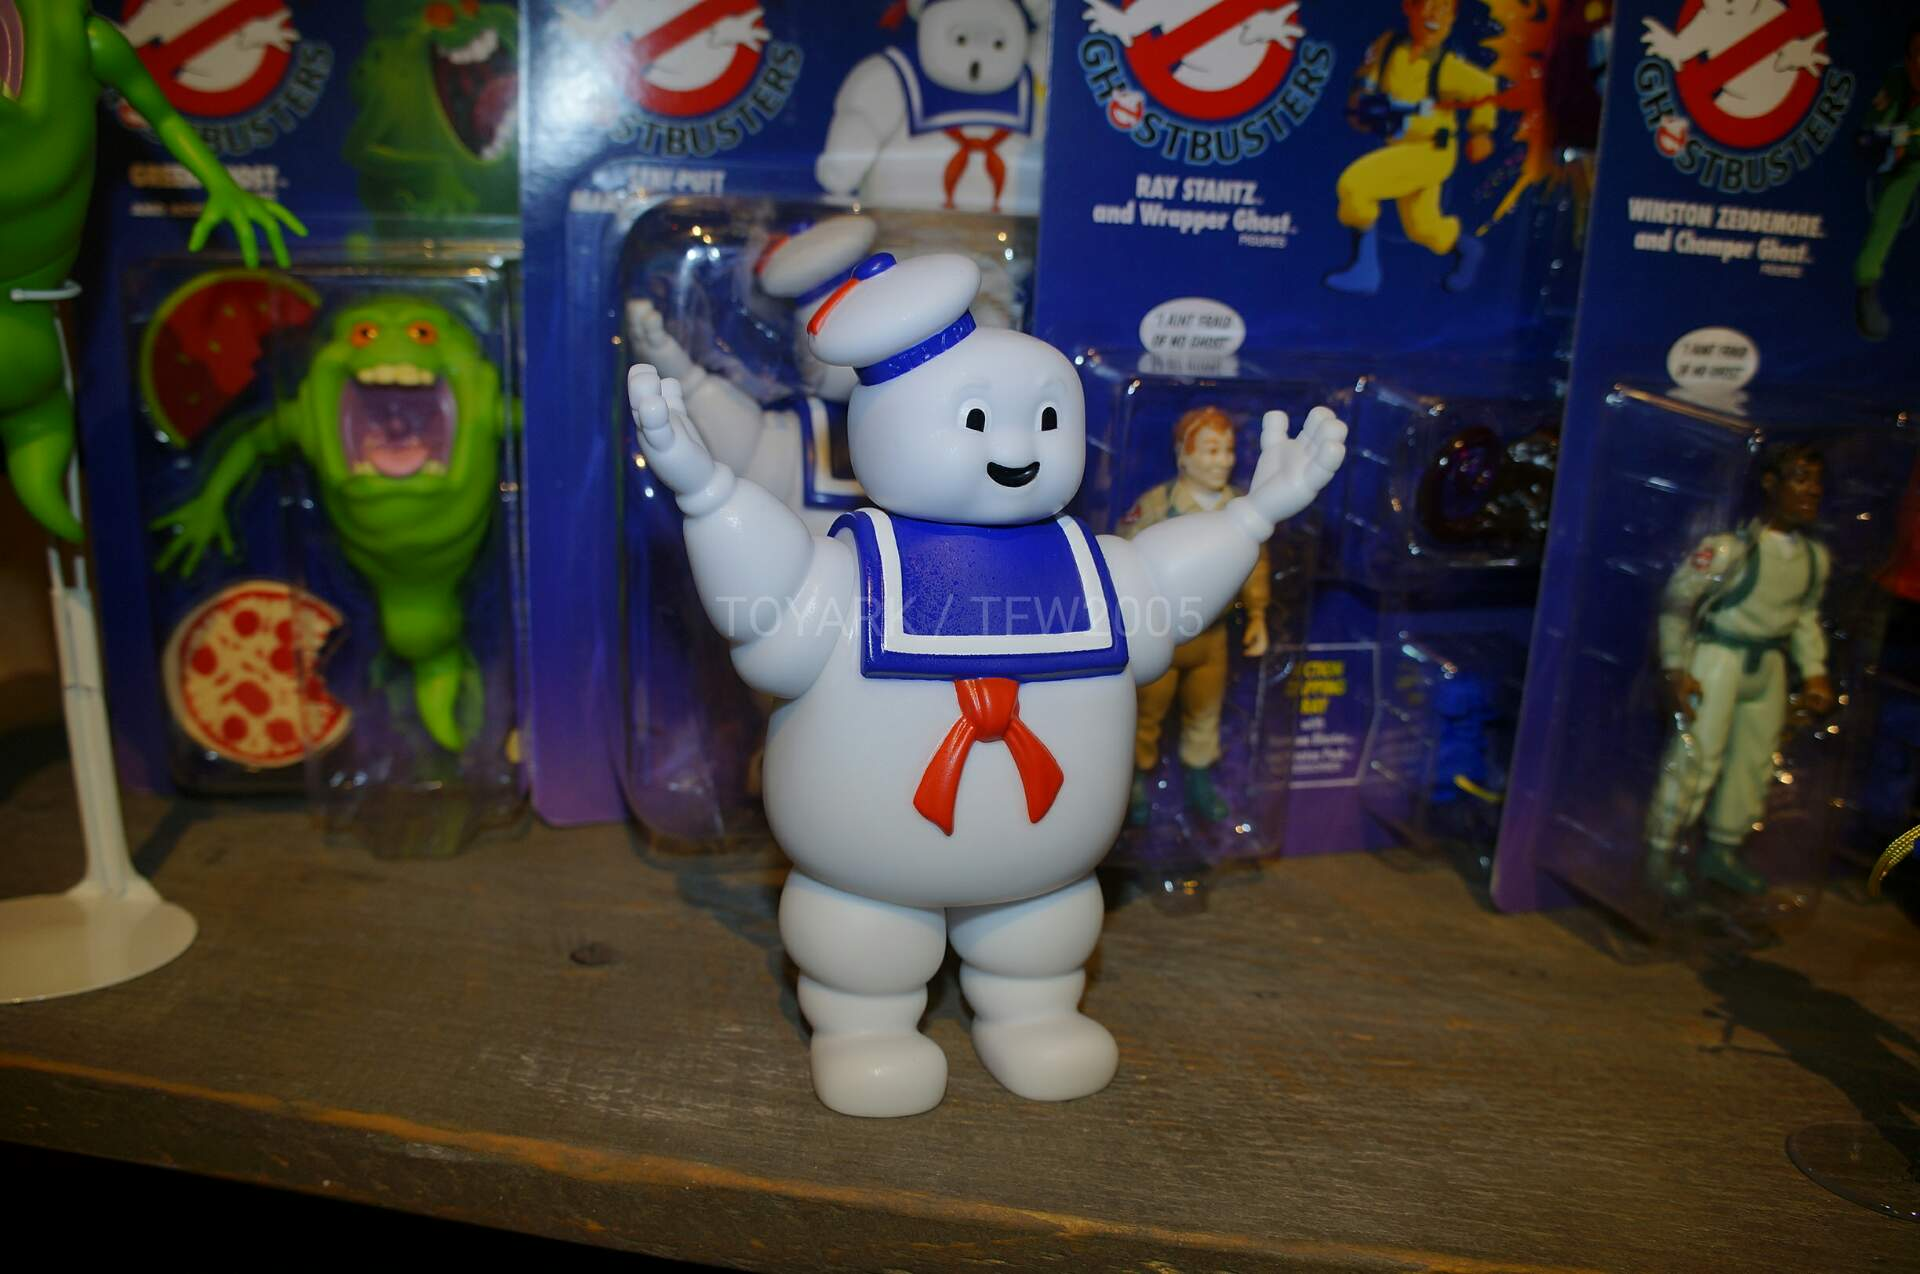 Toy-Fair-2020-Hasbro-Ghostbusters-028.jpg